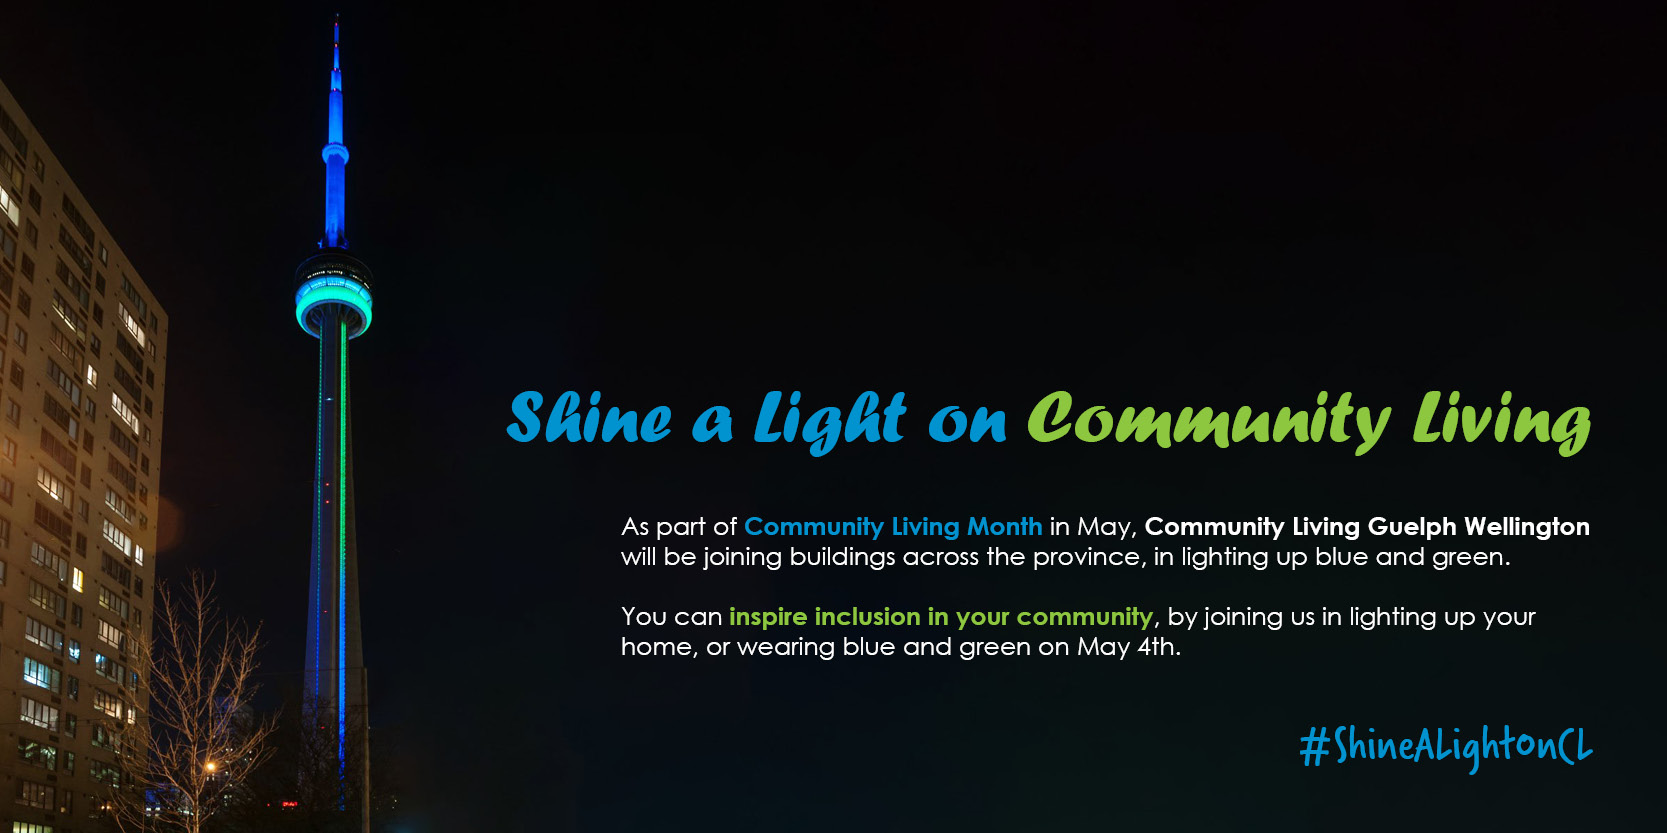 shine a light on community living, community living, inclusion, green and blue, clgw, cn tower blue and green